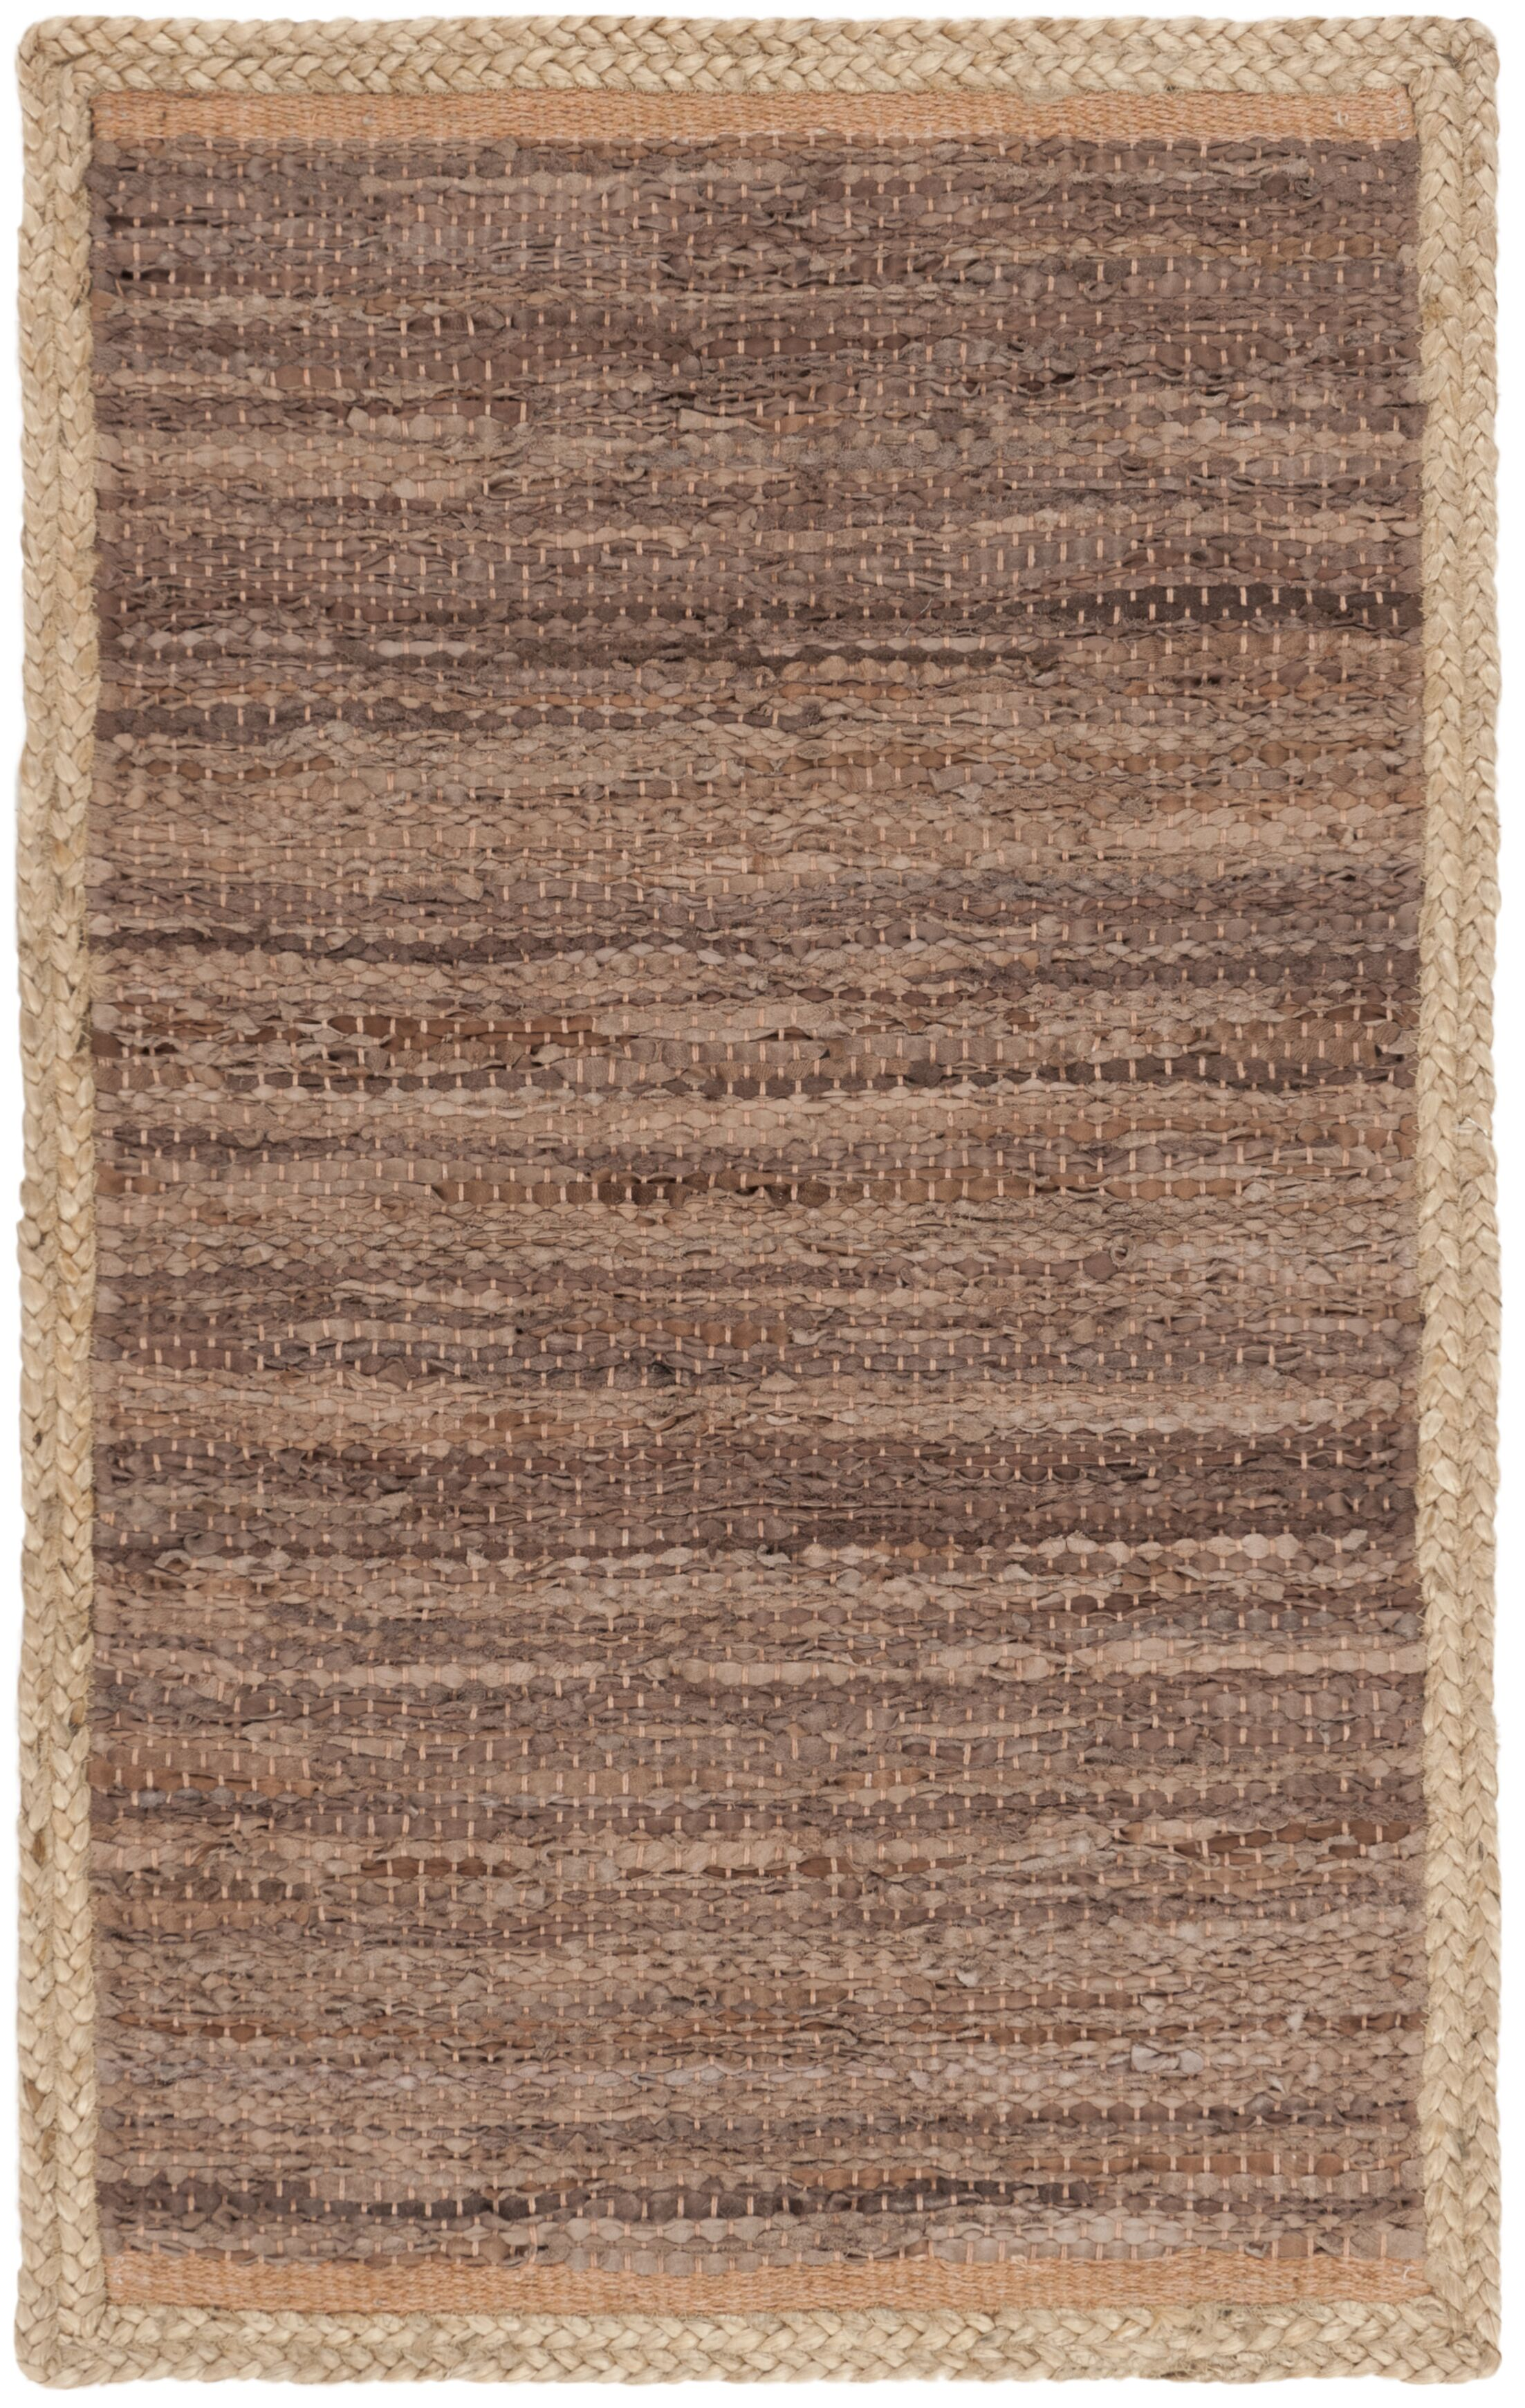 Church Hand-Woven Brown Area Rug Rug Size: Rectangle 2'3